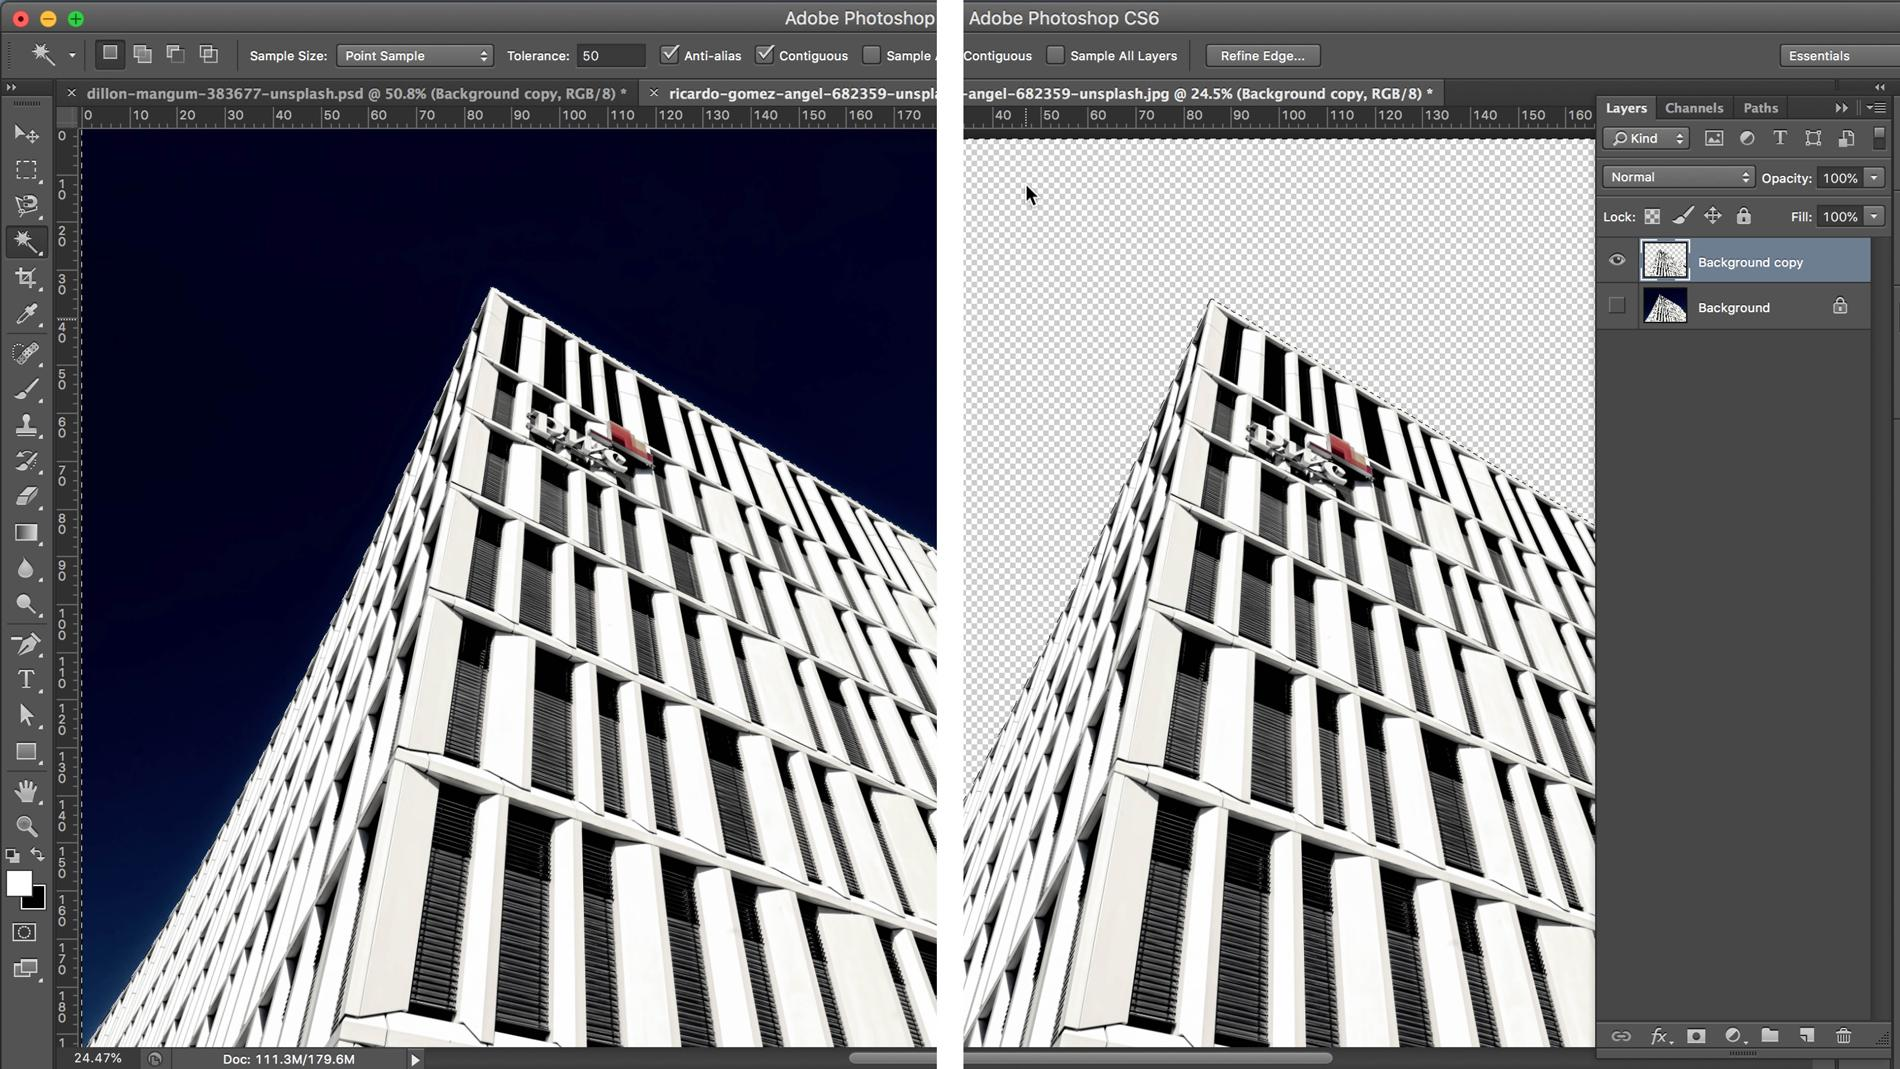 Screenshot of building with background removed in Photoshop